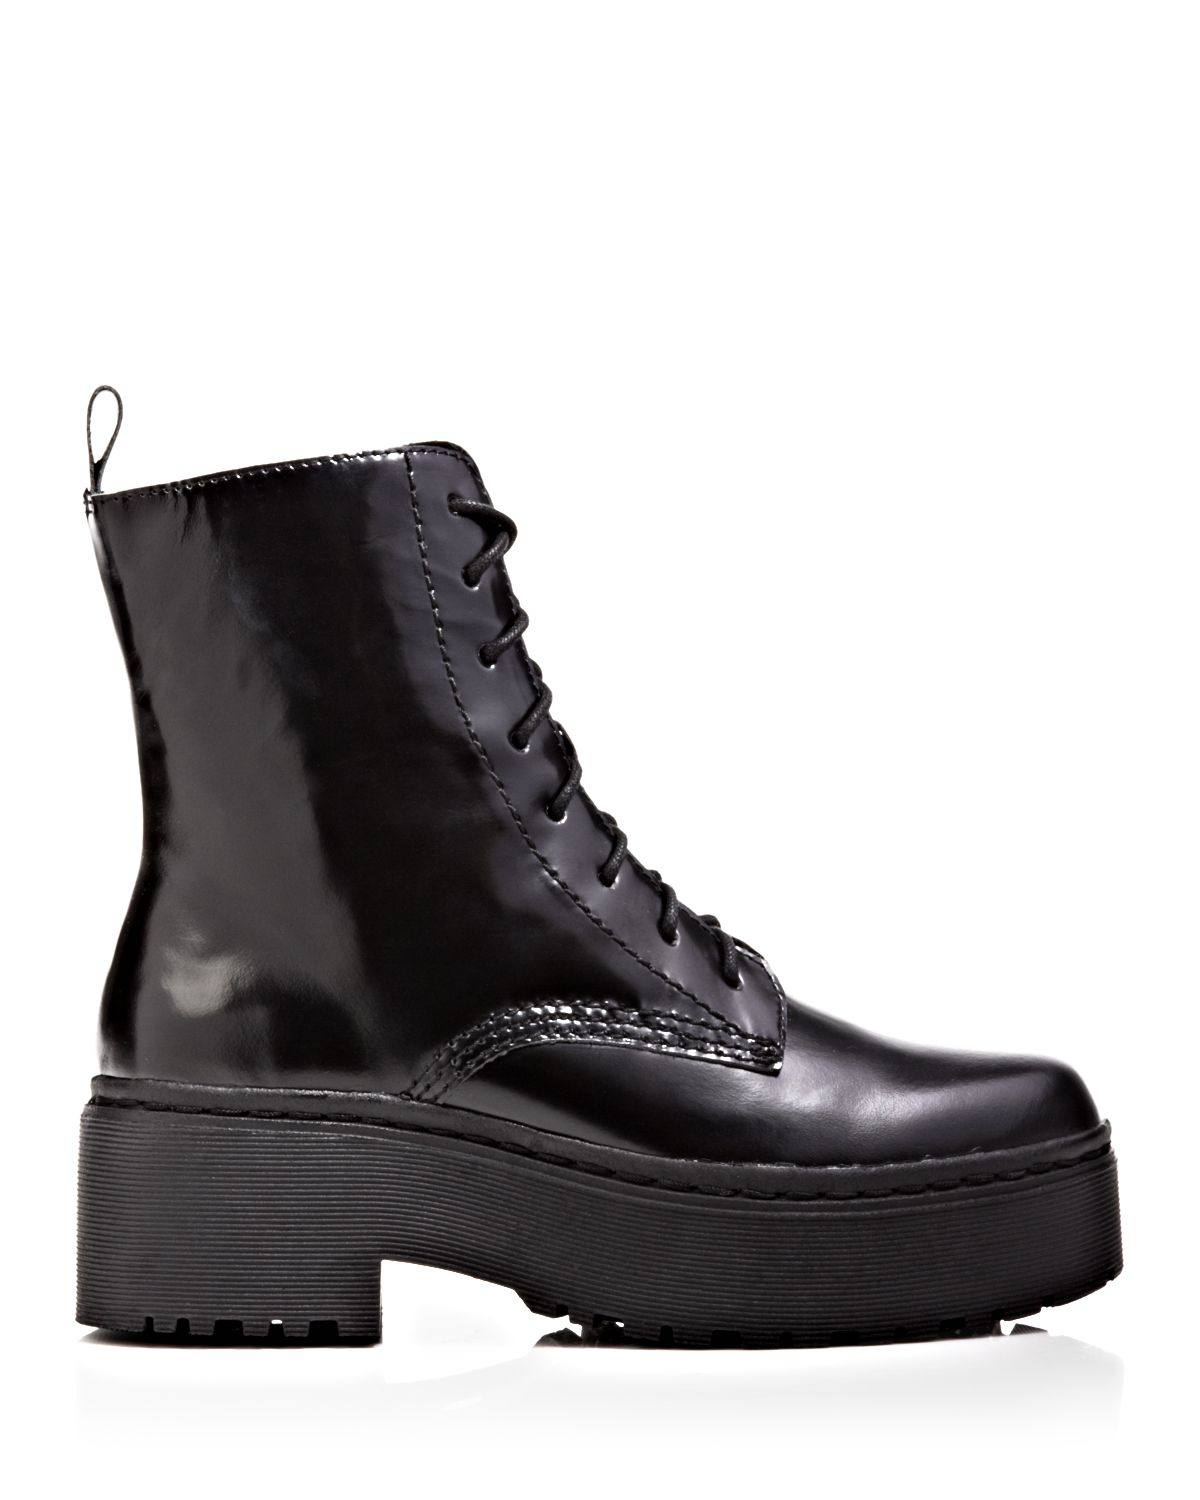 28c87507286 Lyst - Jeffrey Campbell Lace Up Platform Combat Boots - Finnick in Black